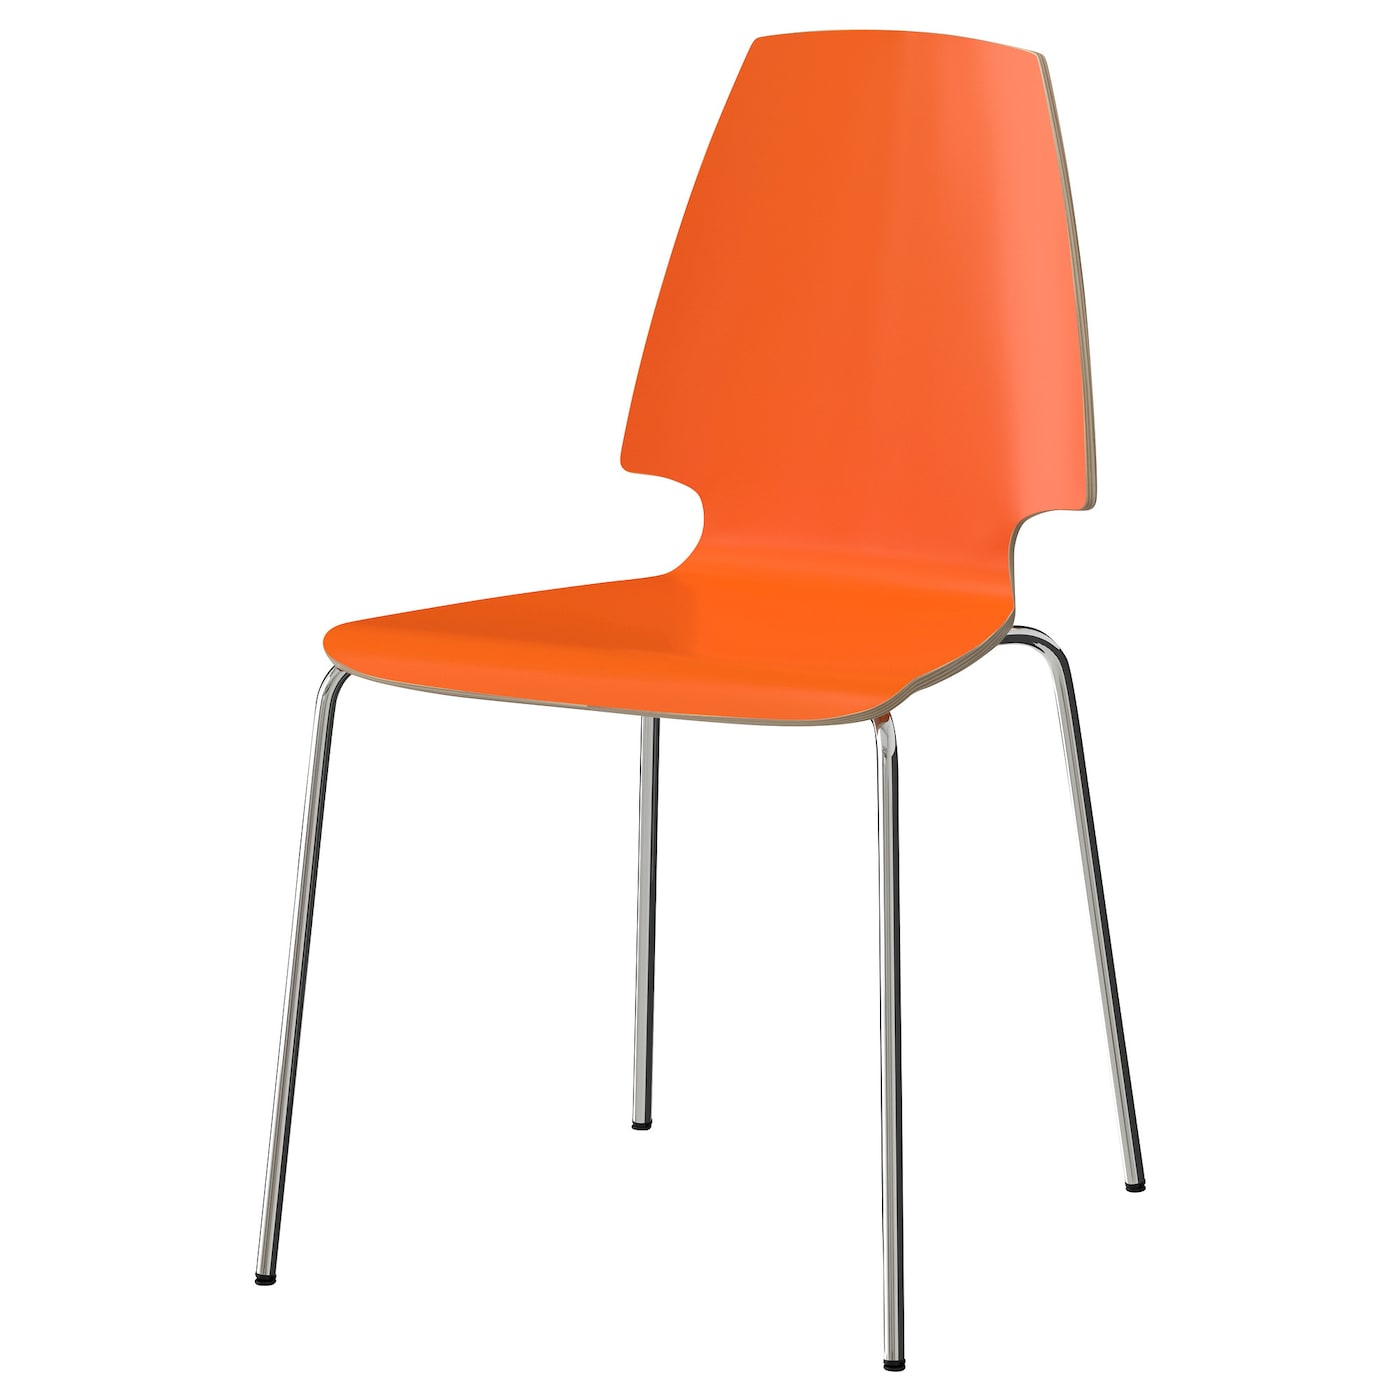 dining chairs  kitchen chairs  ikea - ikea vilmar chair the chair's melamine surface makes it durable and easy tokeep clean